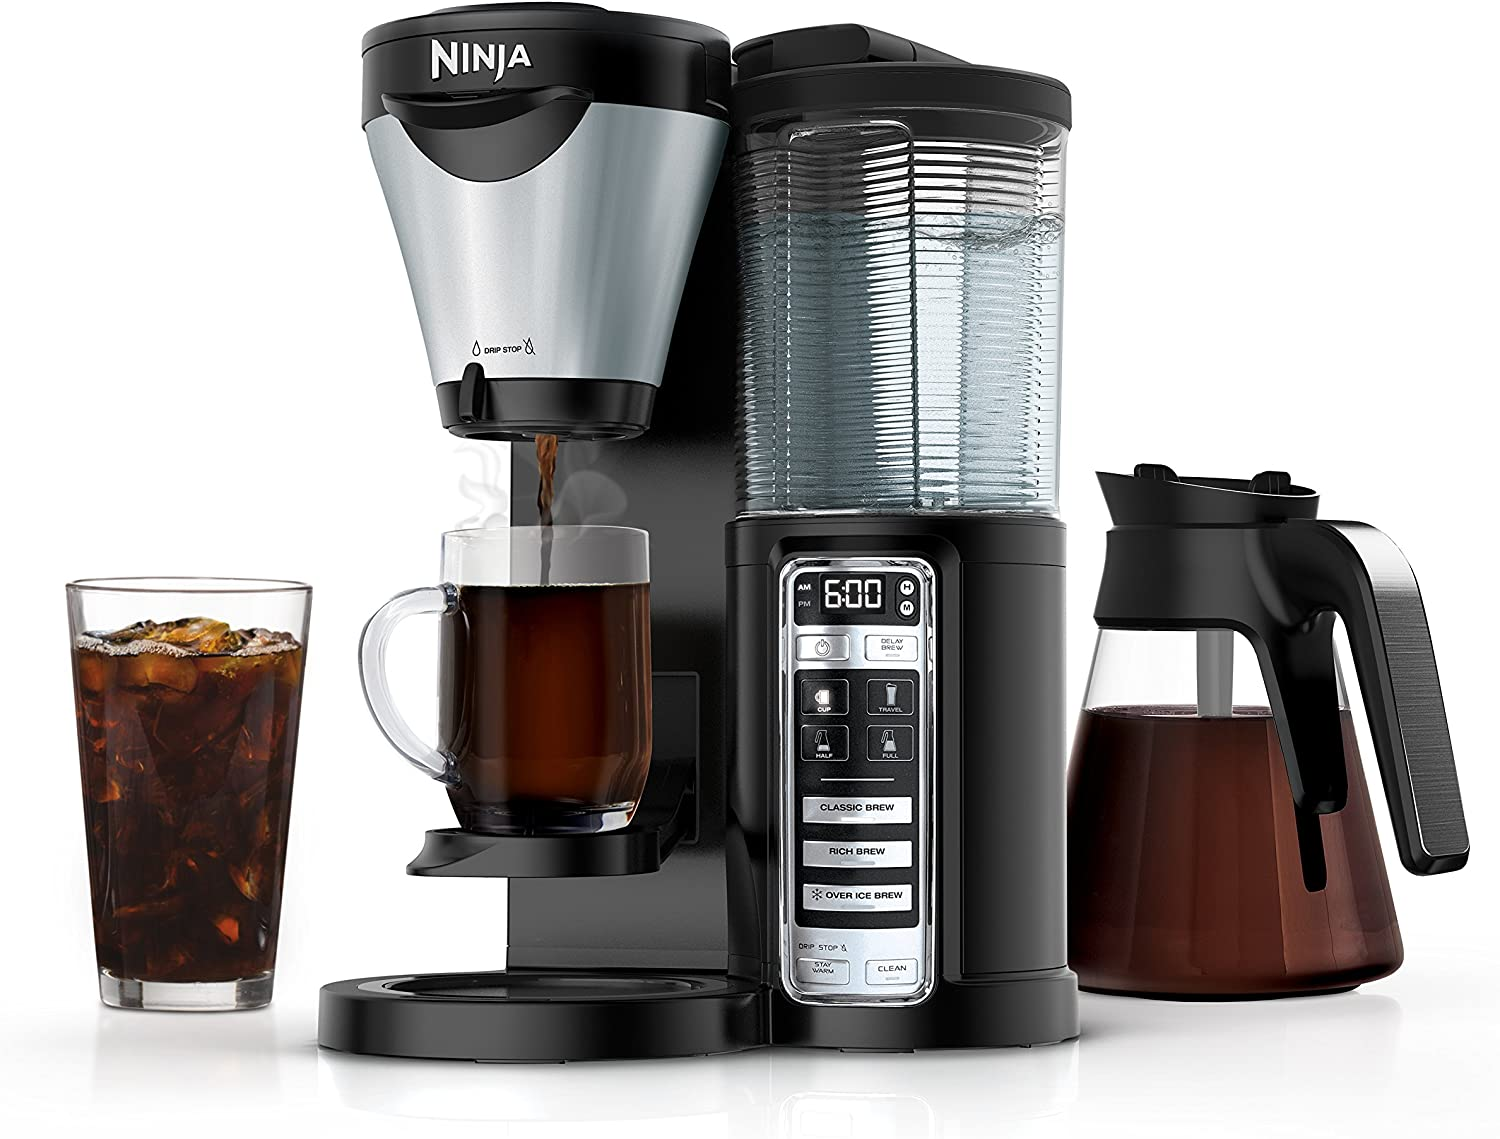 NINJA 3-BREW HOT AND ICED TWO WAY COFFEE MAKER